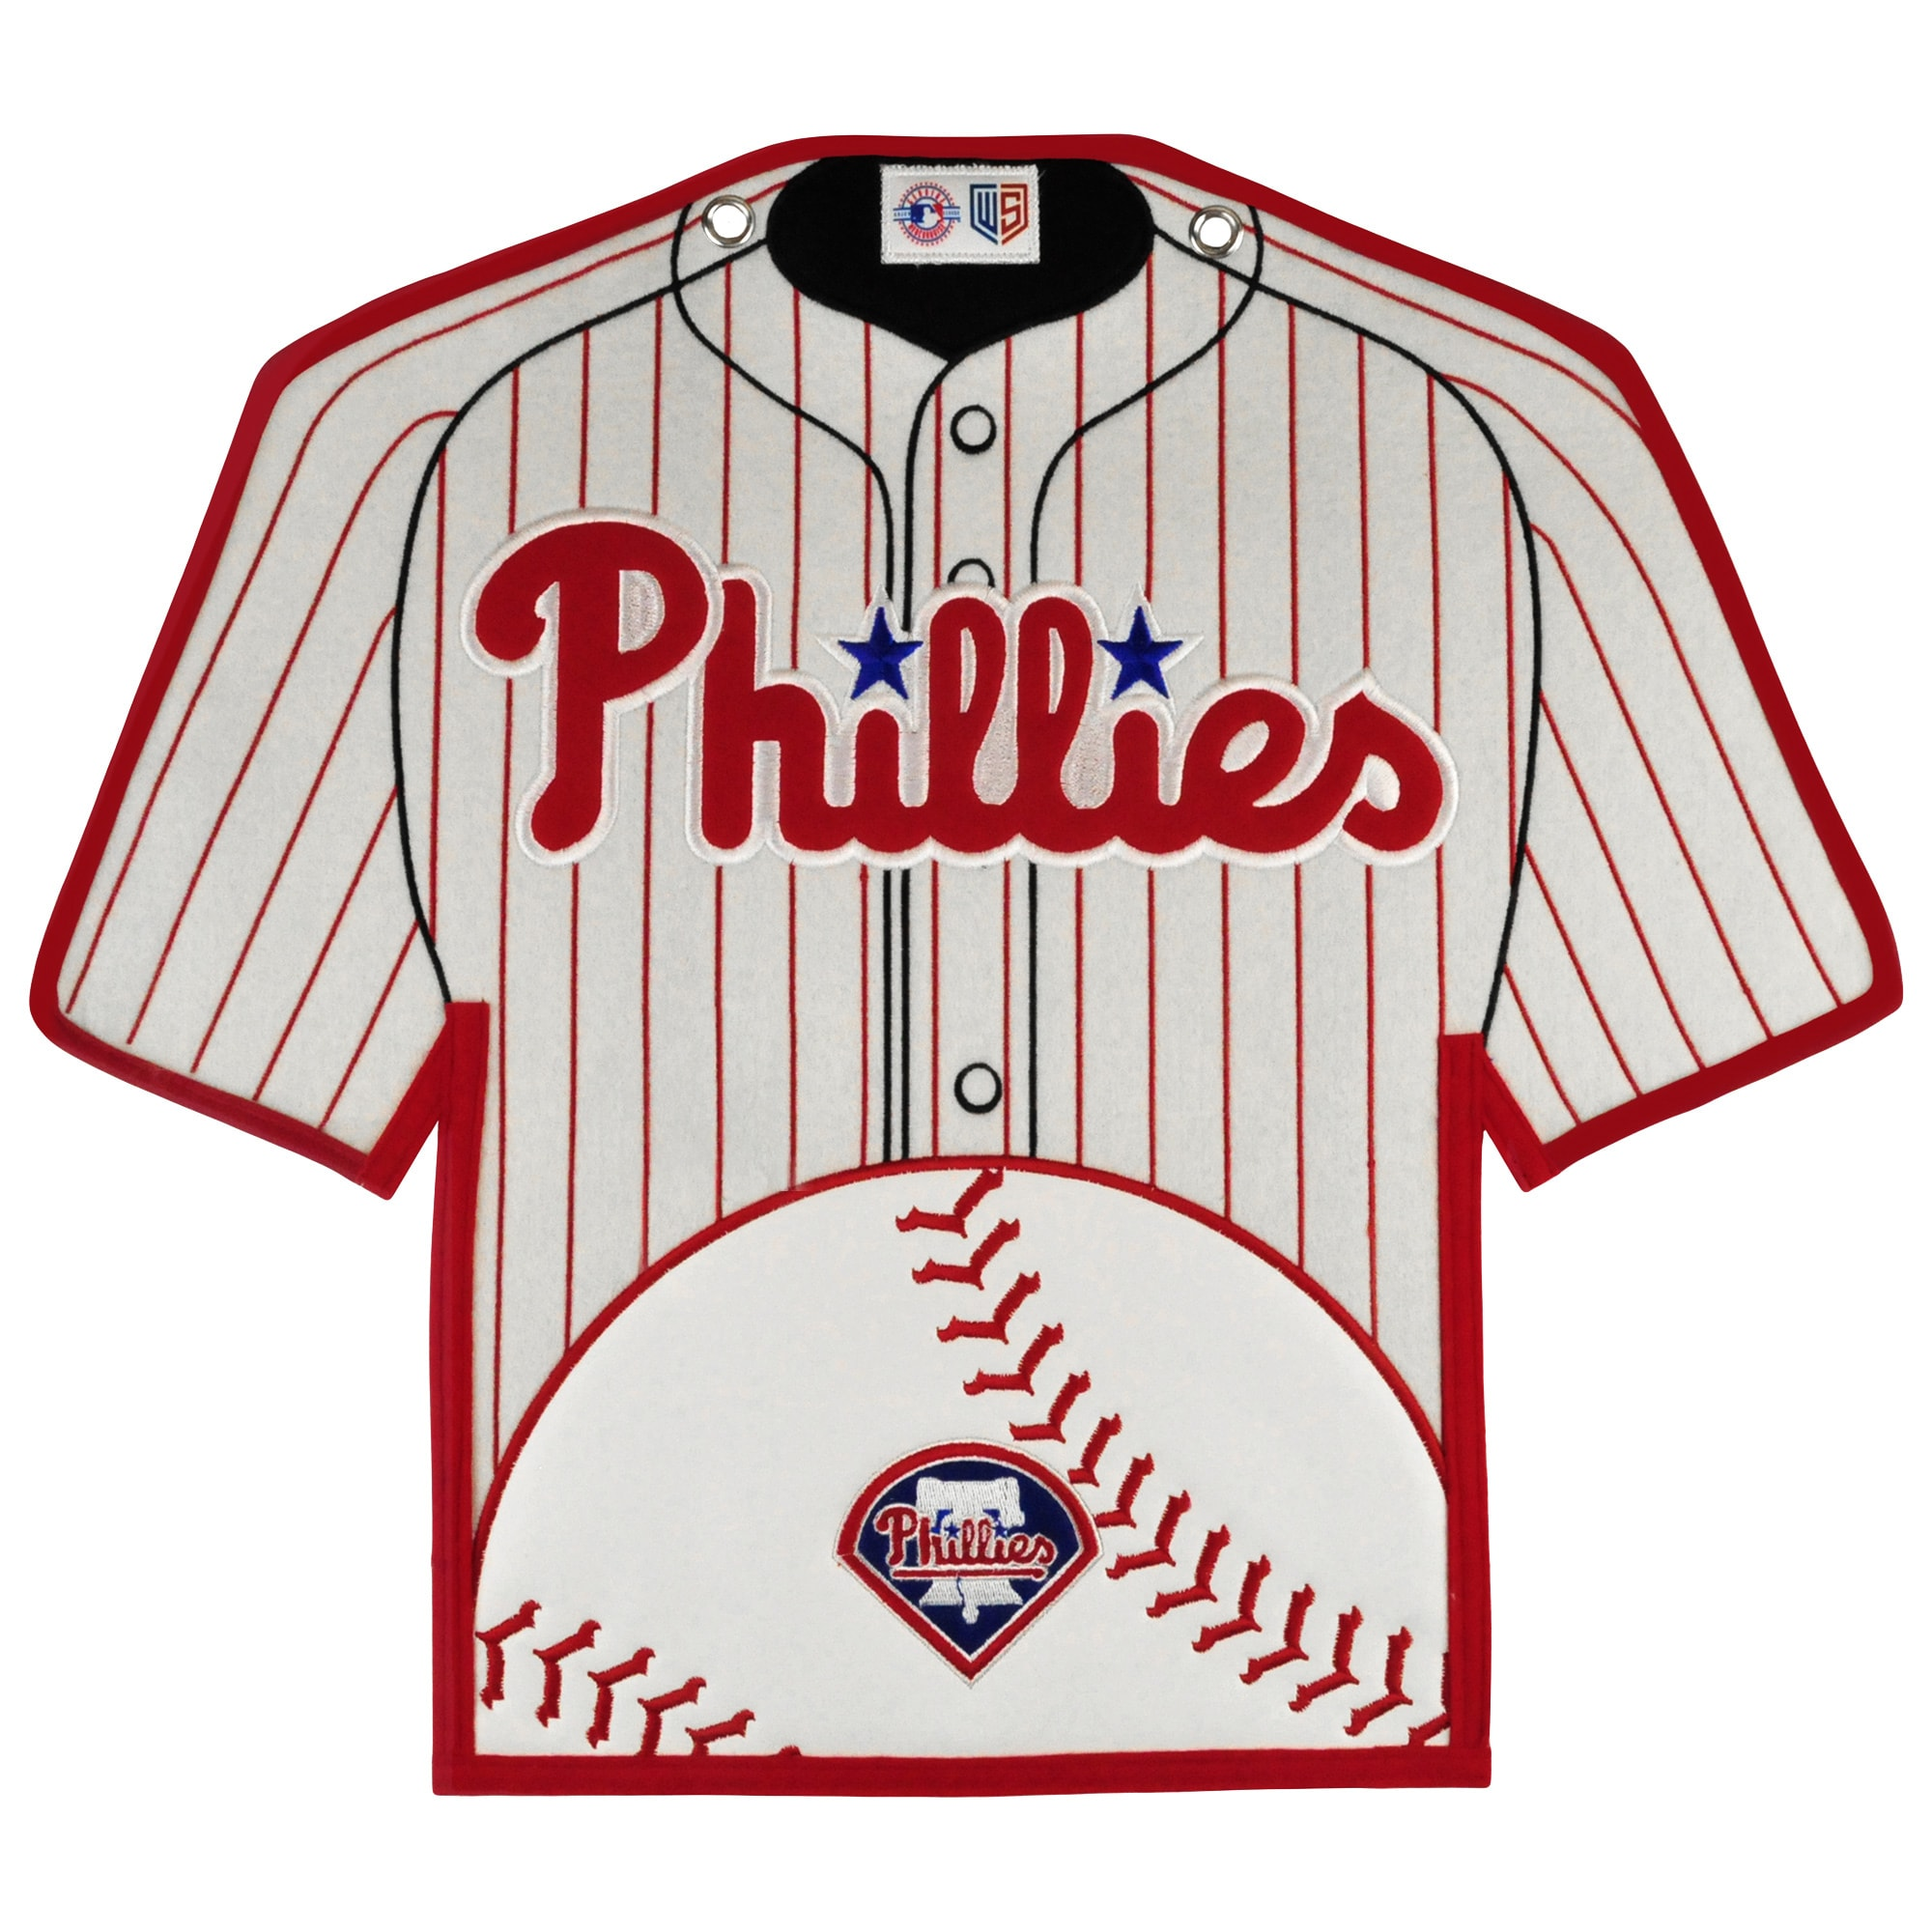 Philadelphia Phillies 14'' x 22'' Jersey Traditions Banner - White/Red